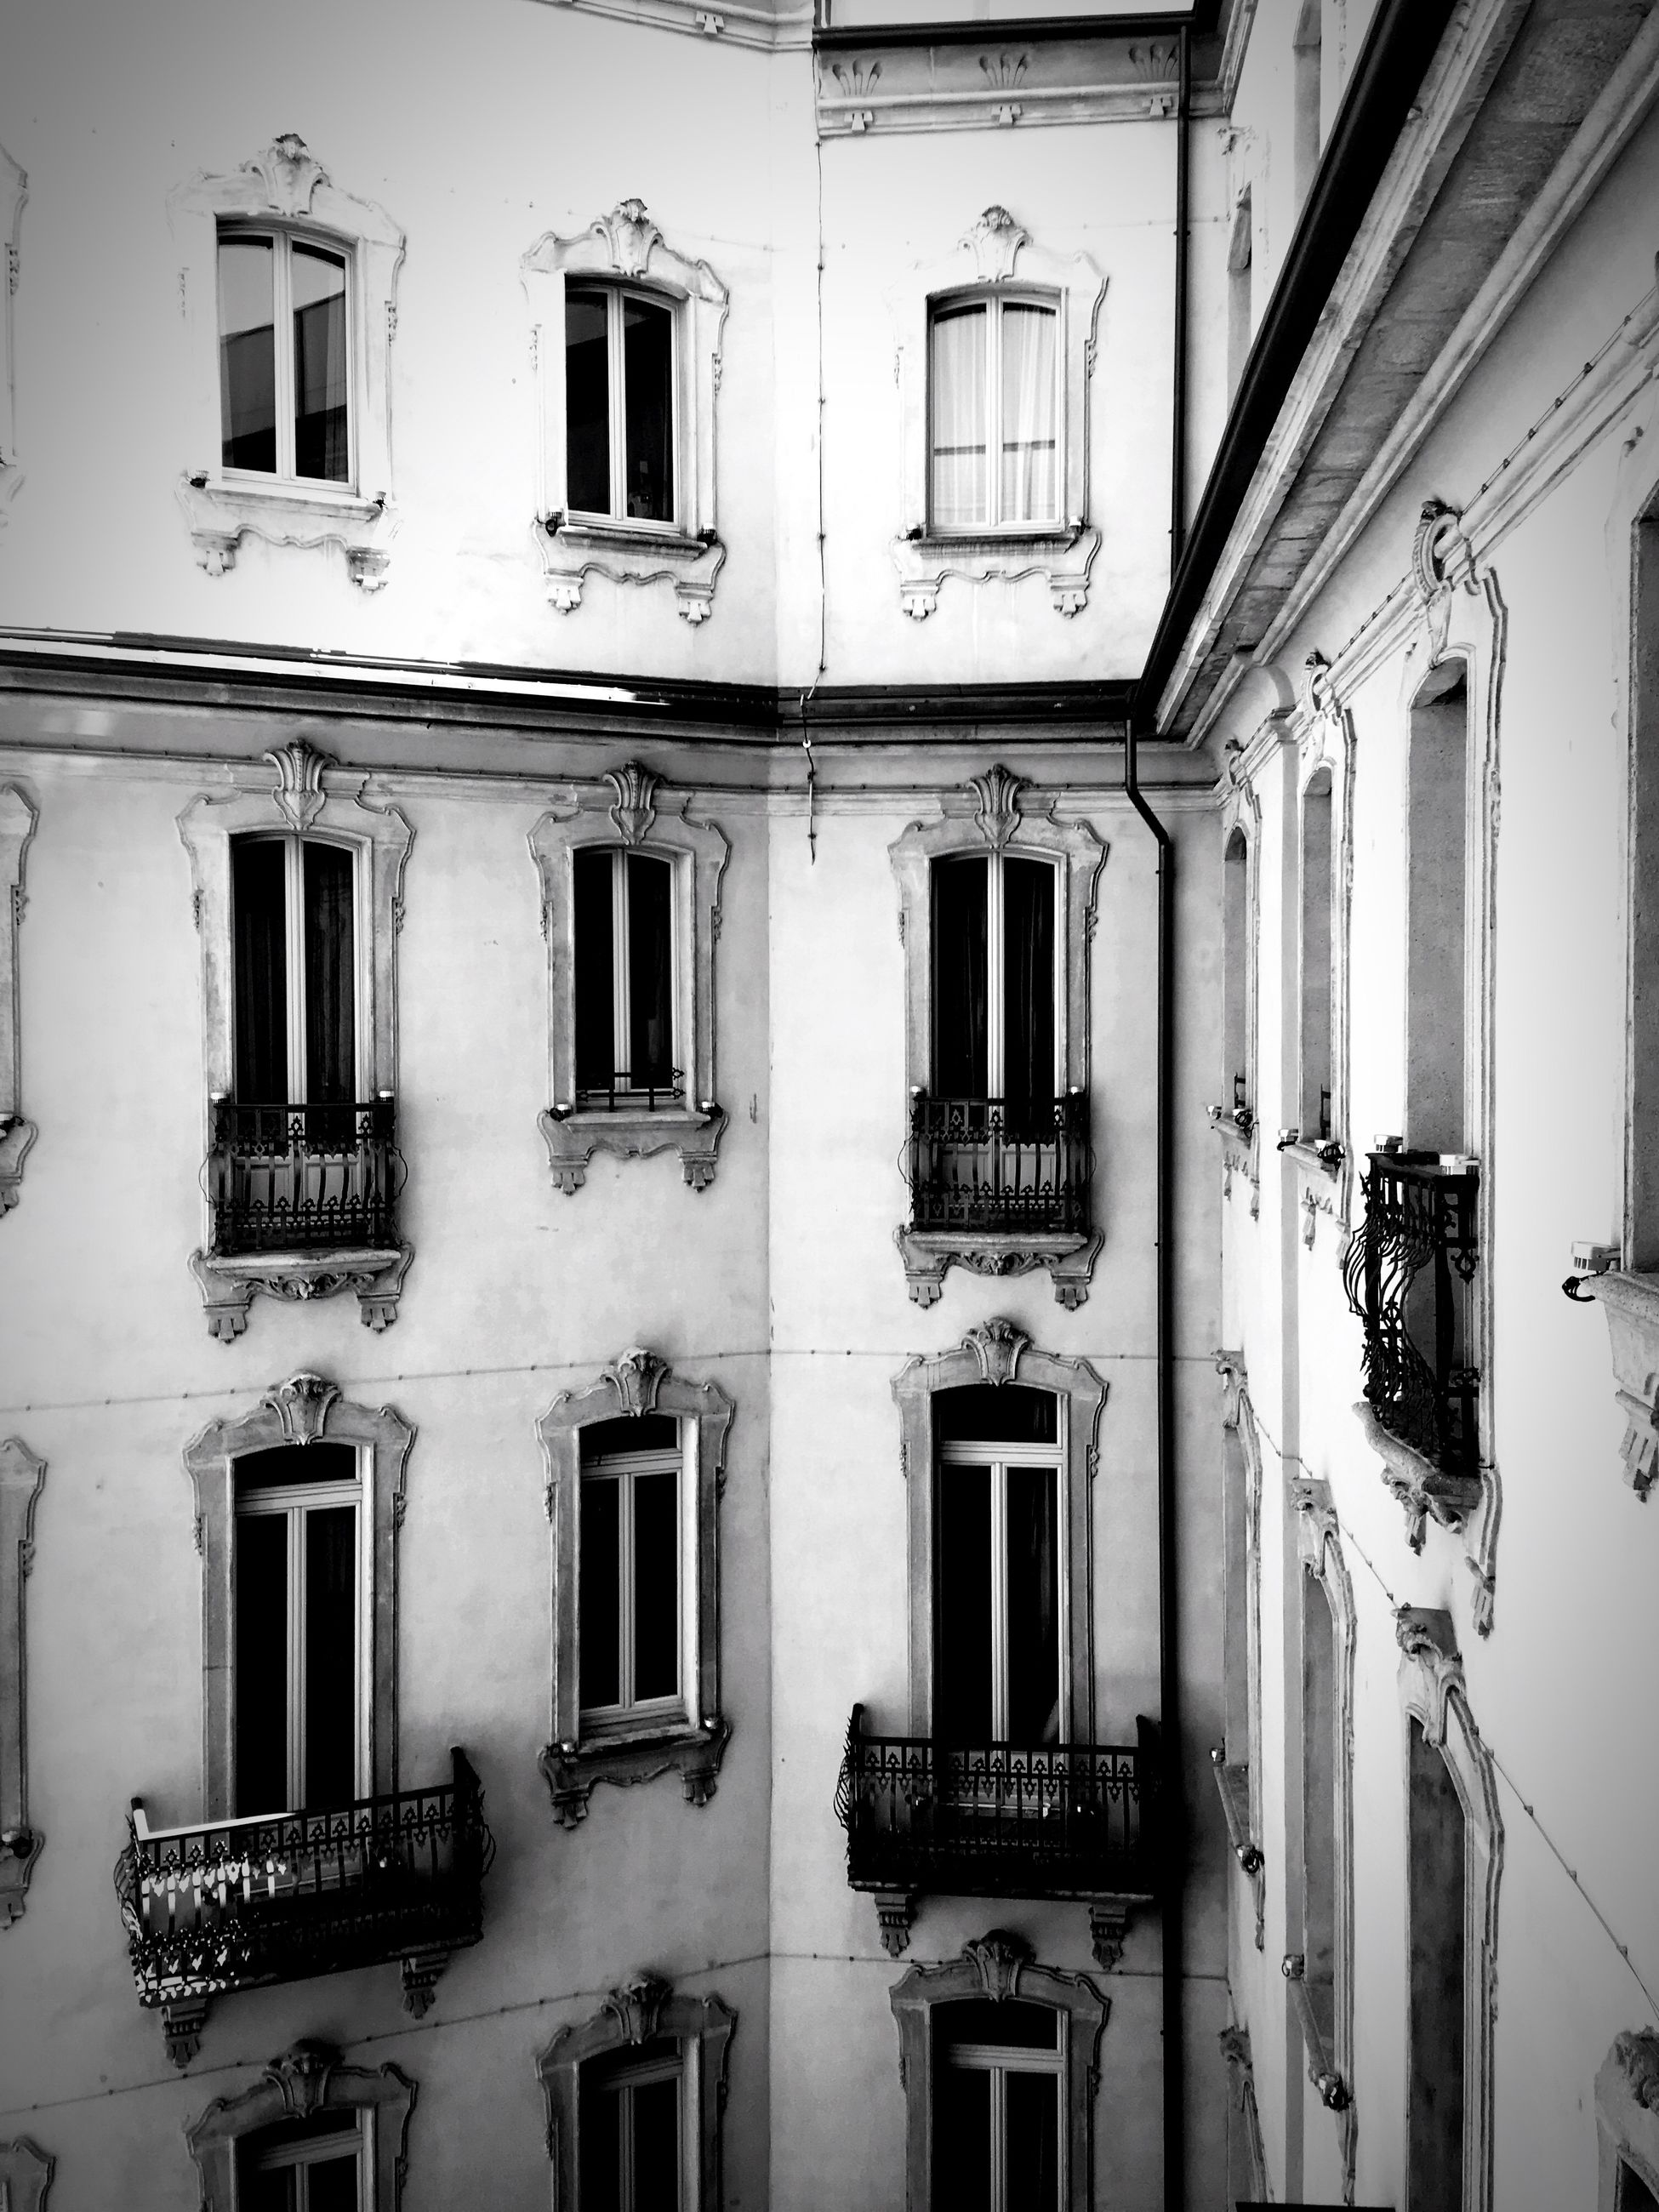 architecture, building exterior, built structure, window, residential building, building, residential structure, low angle view, balcony, full frame, house, in a row, day, facade, no people, city, outdoors, side by side, repetition, door